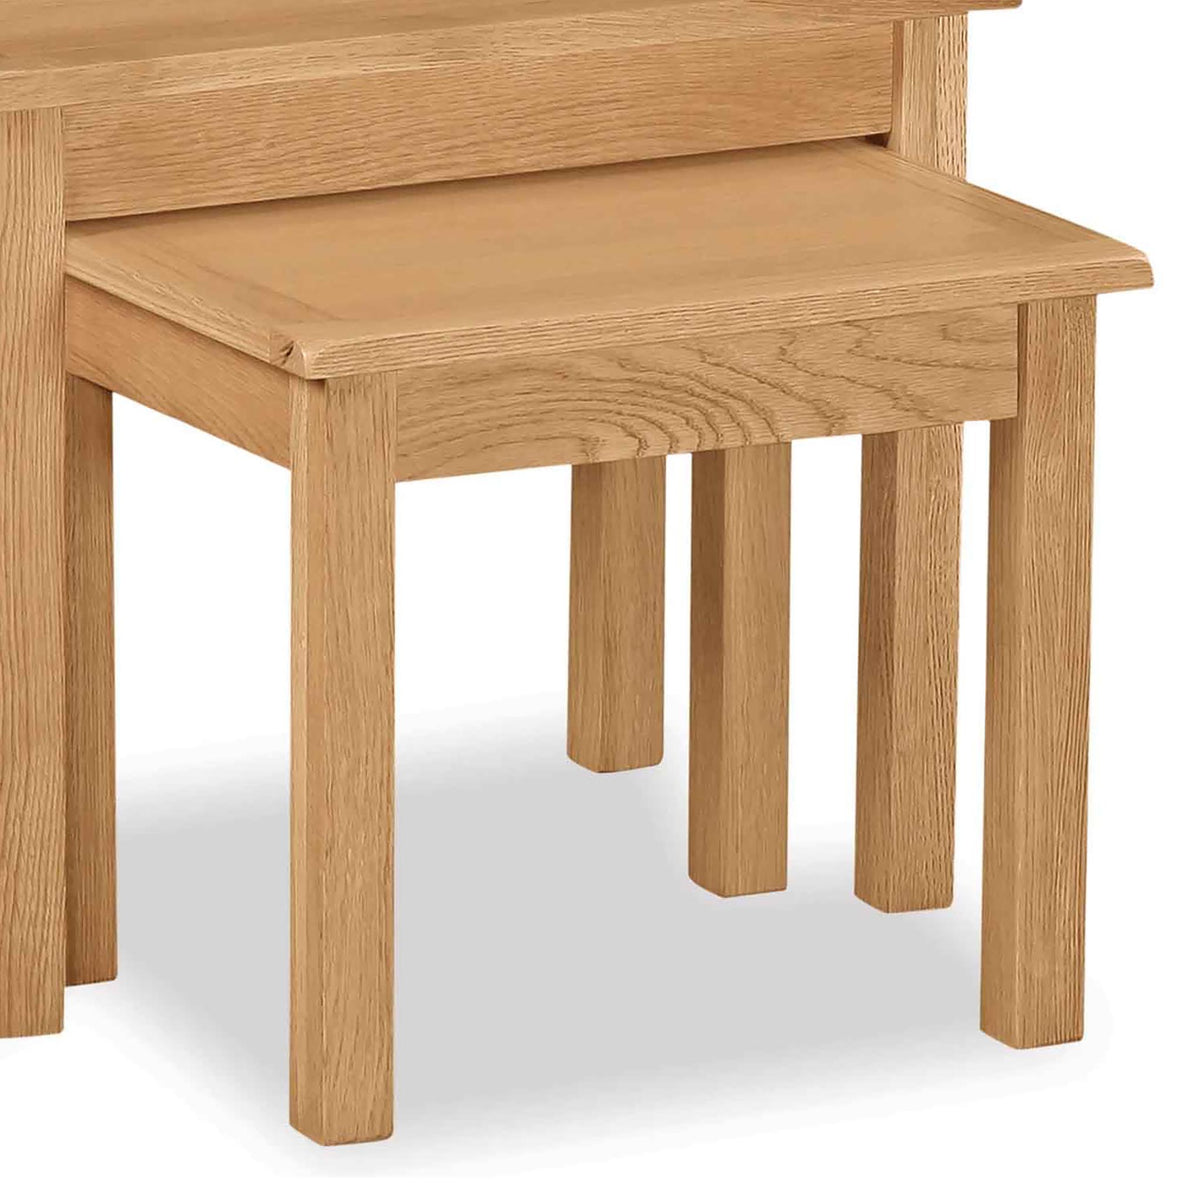 Cotswold Oak Nest of 2 Tables - Close up of smaller table